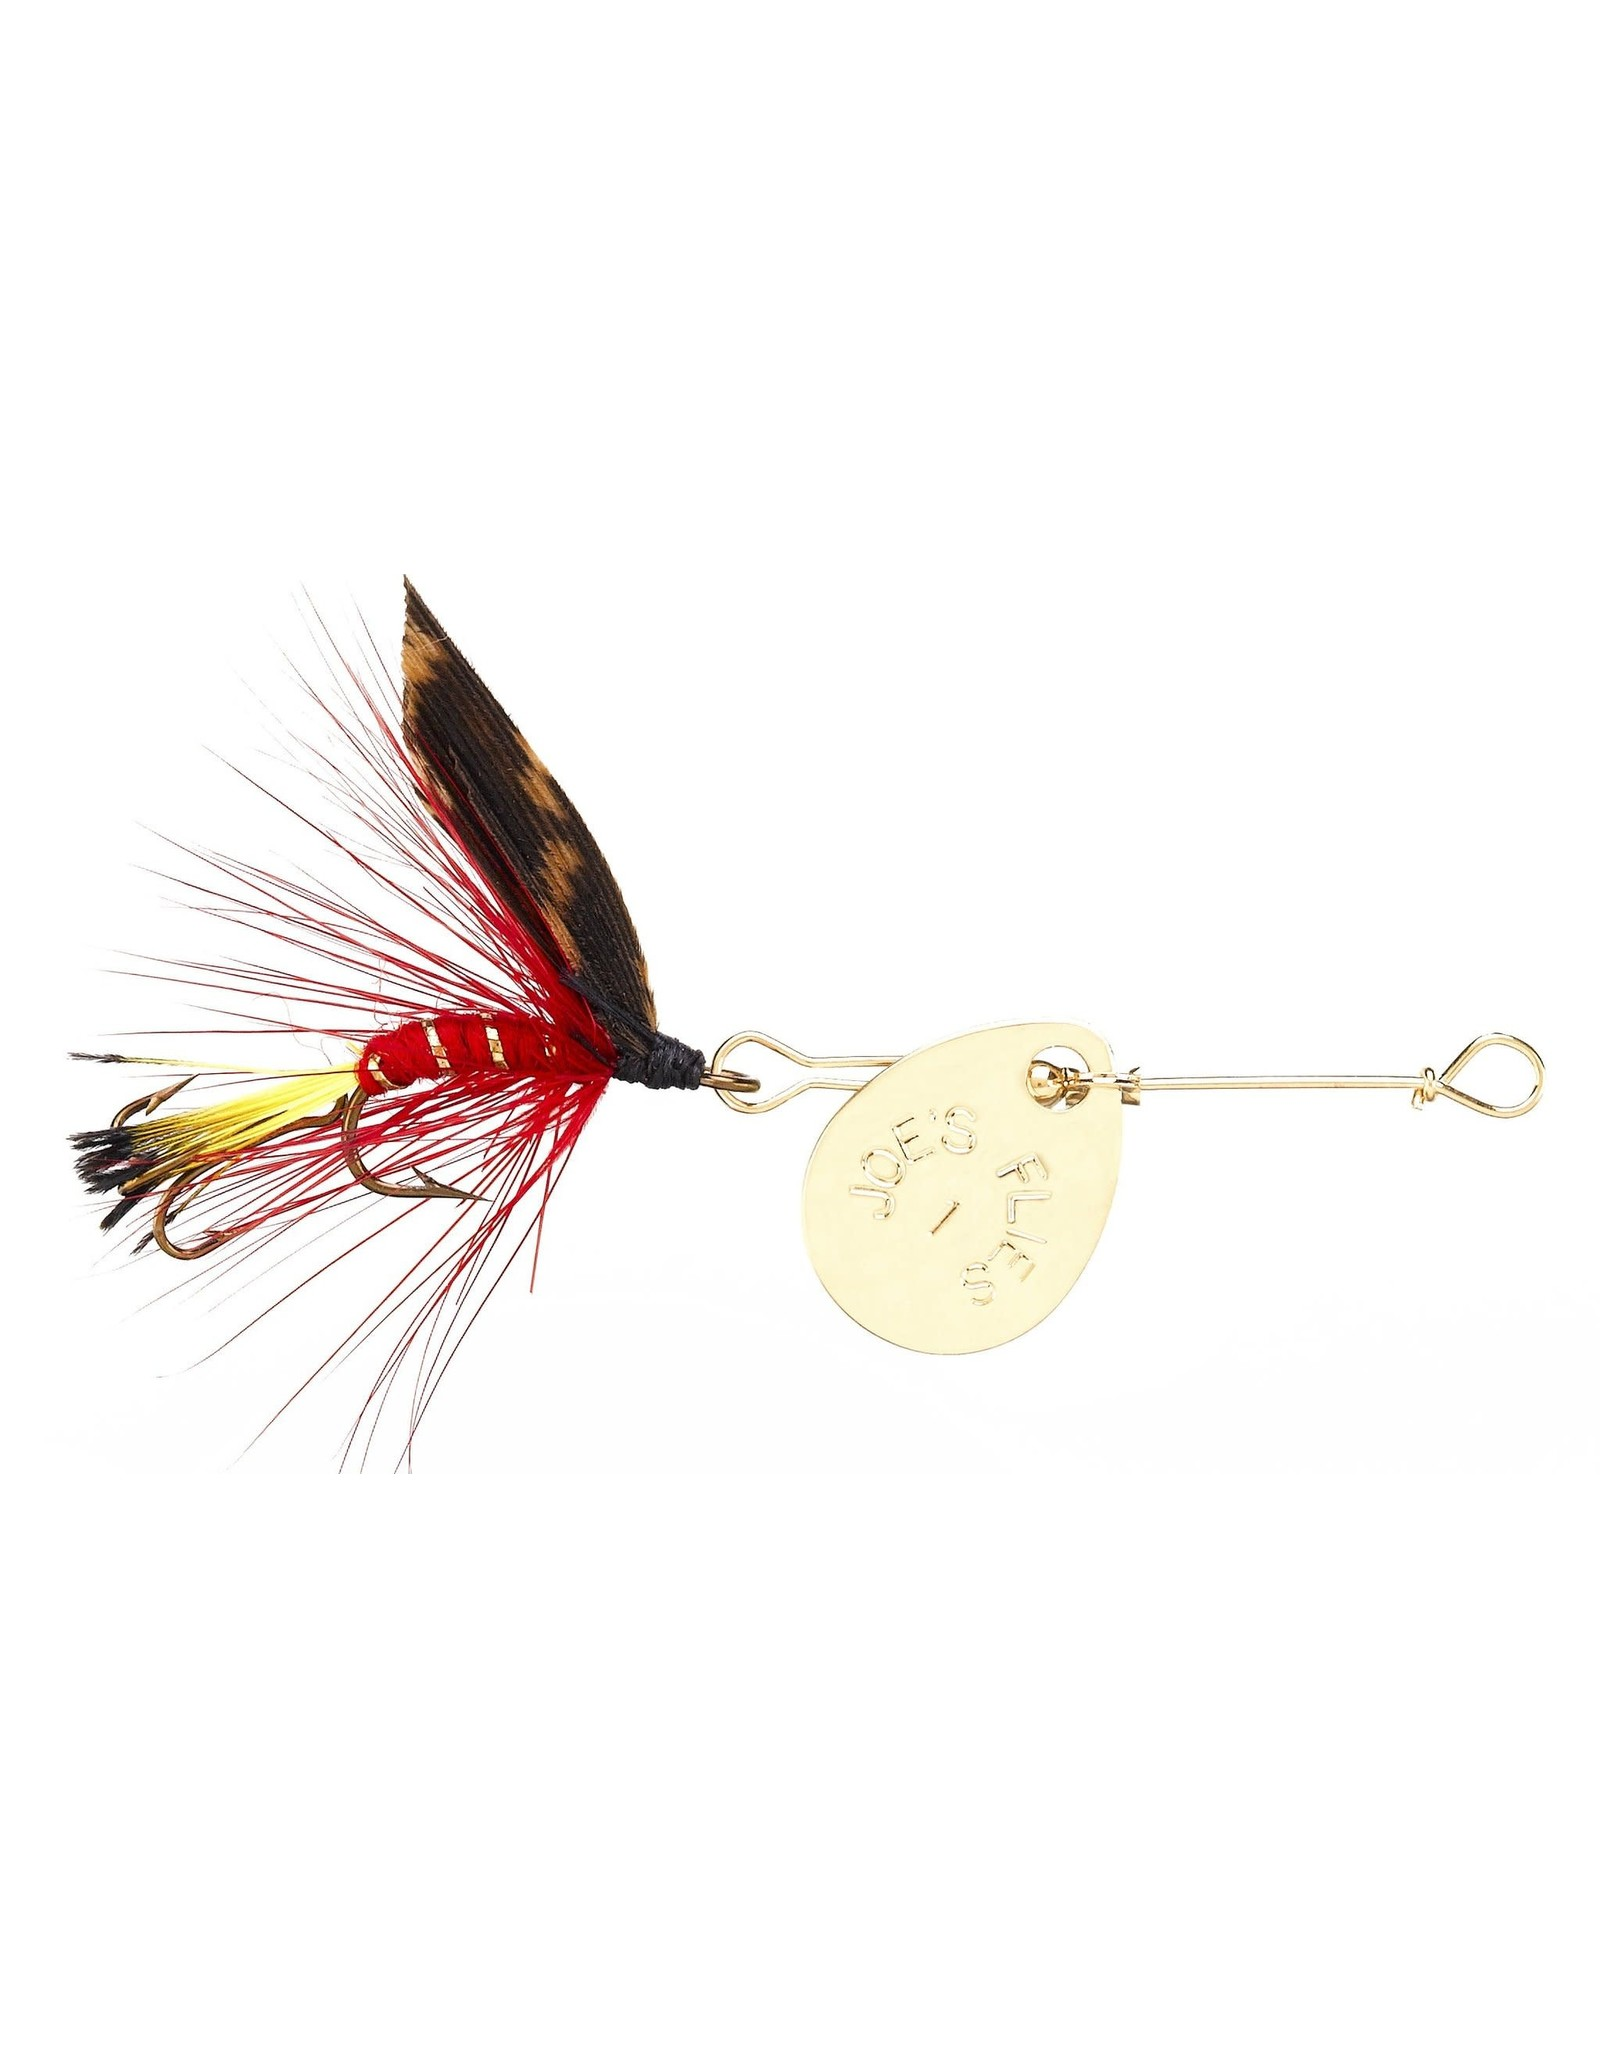 Joe's Flies Joe's Flies Short Striker